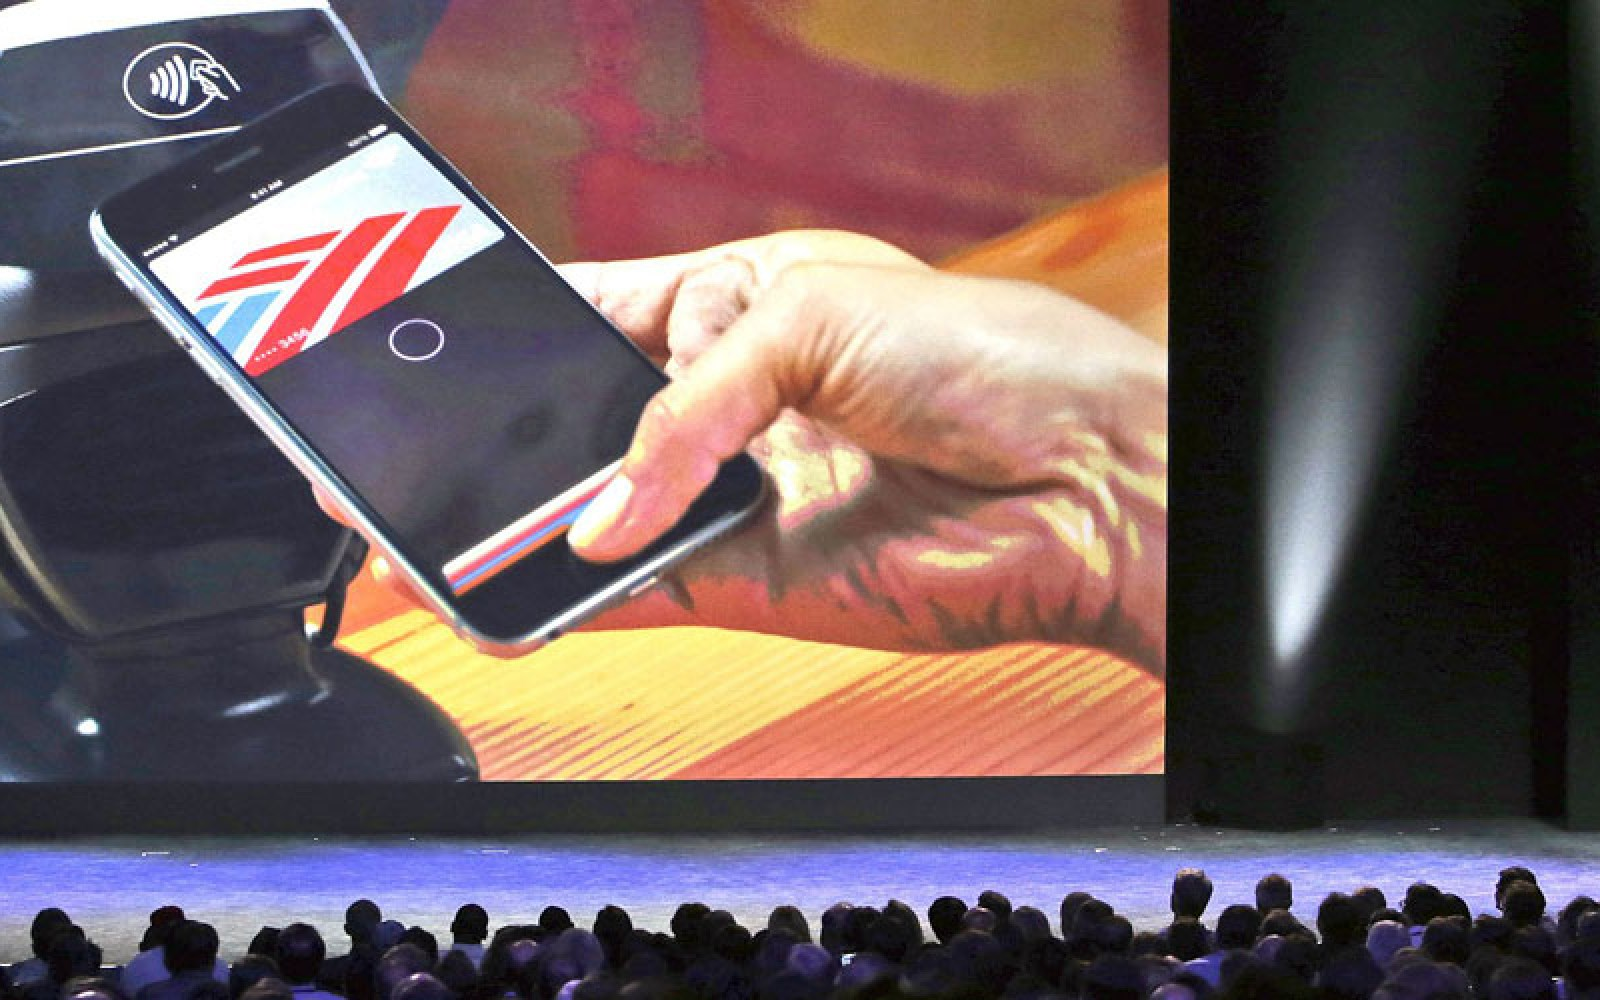 Australian banks demand access to NFC chip on iPhone to better compete with Apple Pay